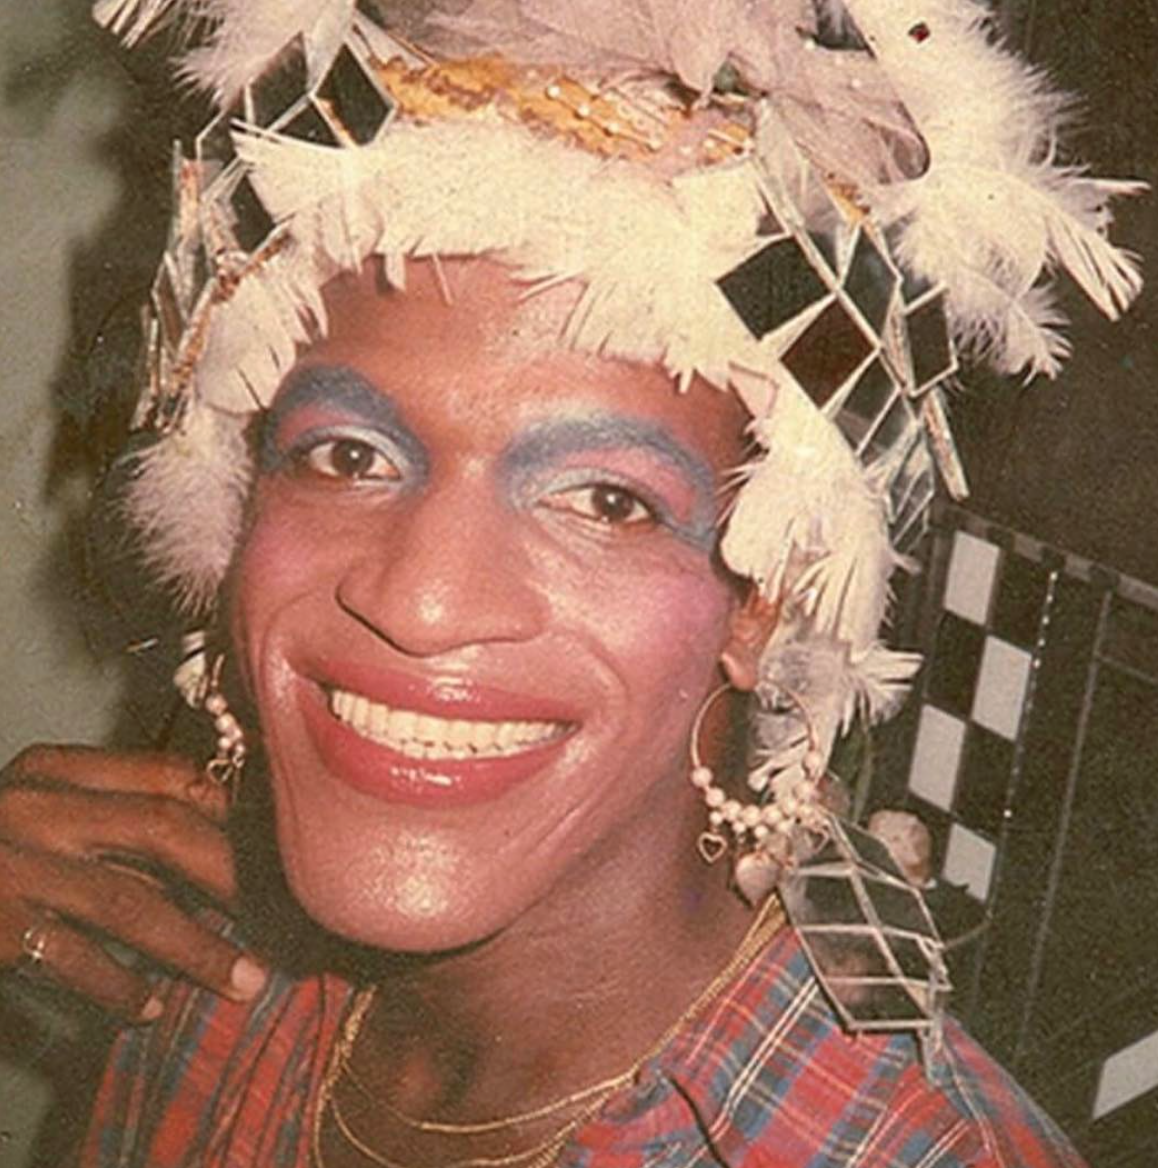 Iconic trans activist Marsha P. Johnson is getting a new documentary, and we hope it will help the late heroine get justice